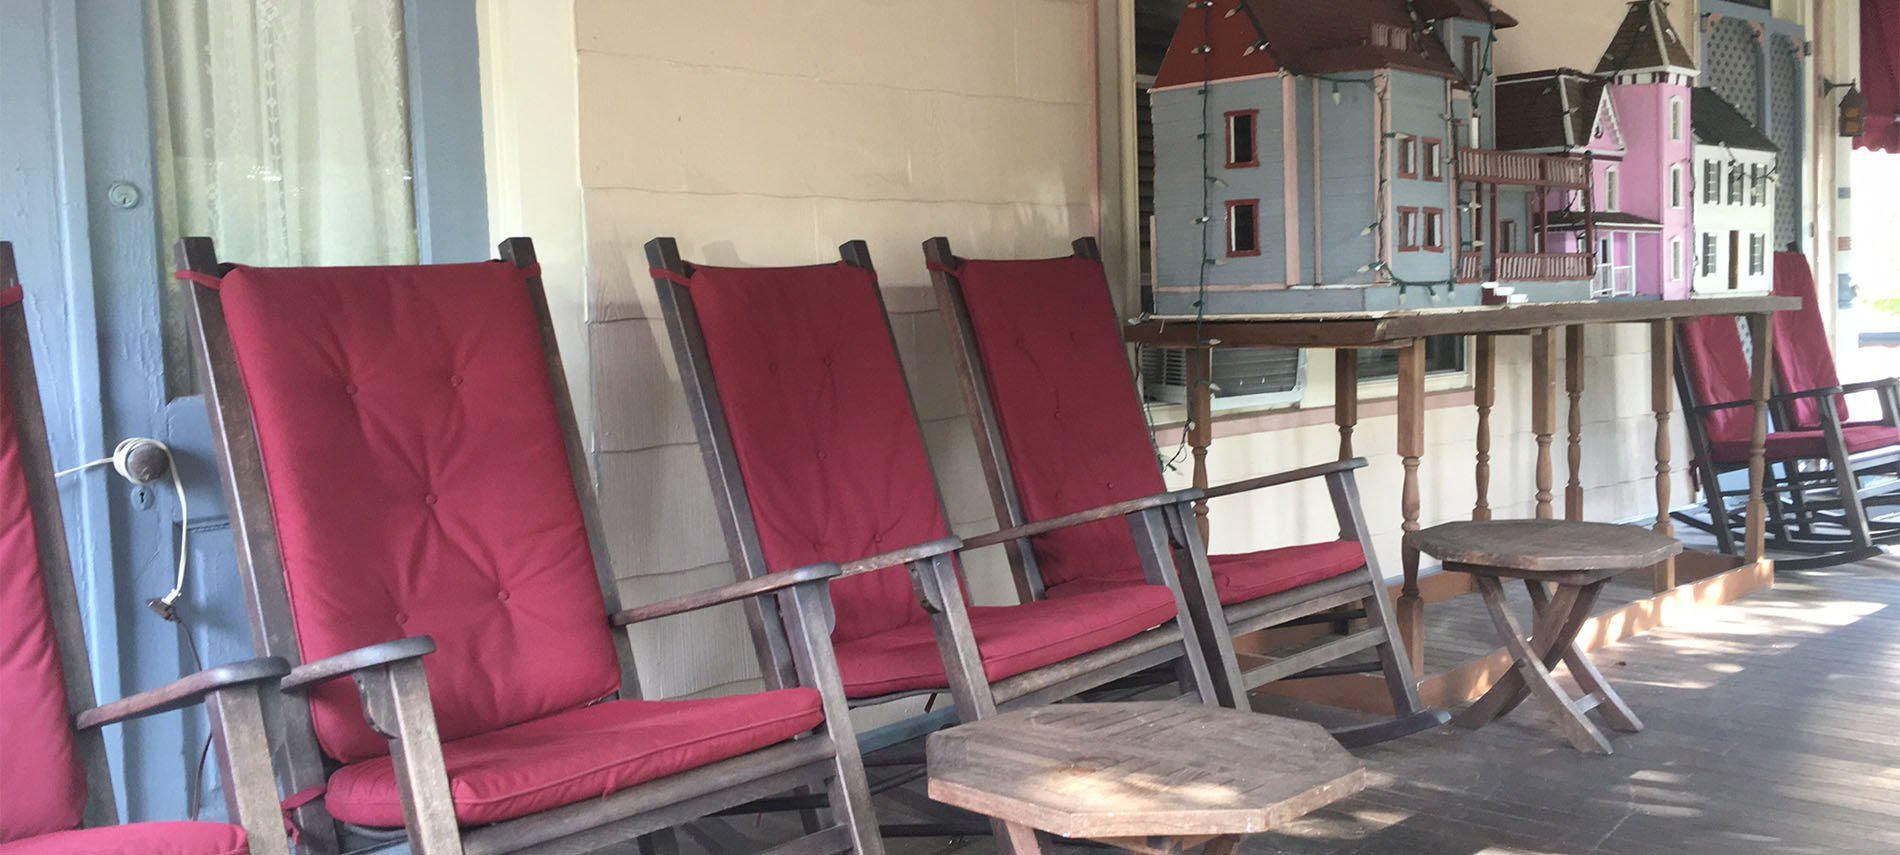 Rocking chairs lined up on a porch with small tables.